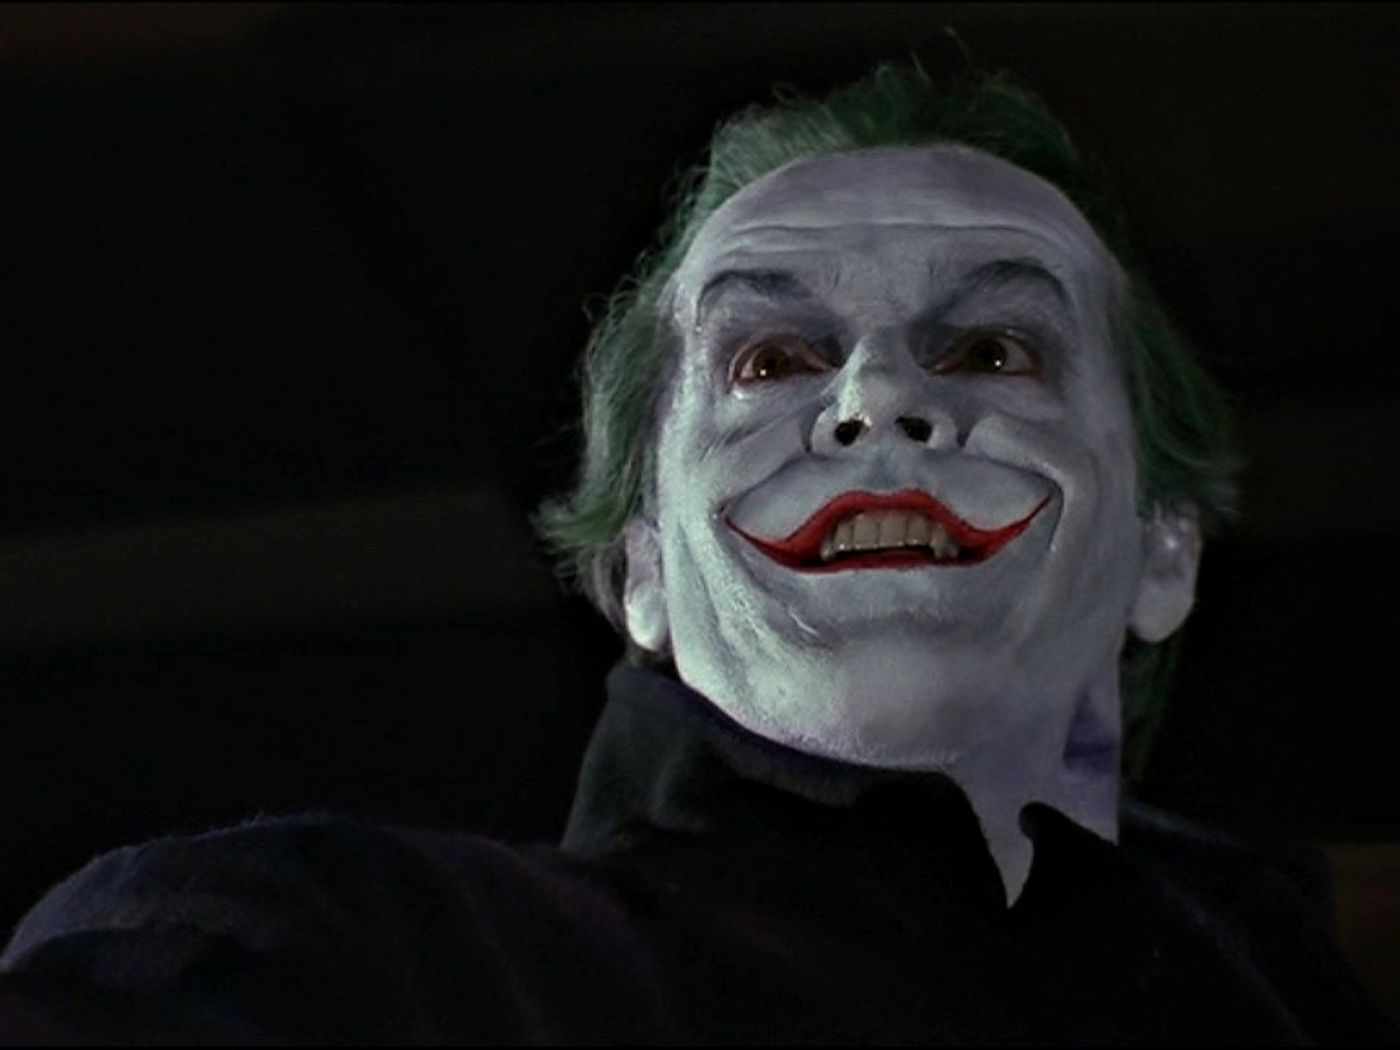 The Joker Smiling Portrait Wallpaper 1400x1050